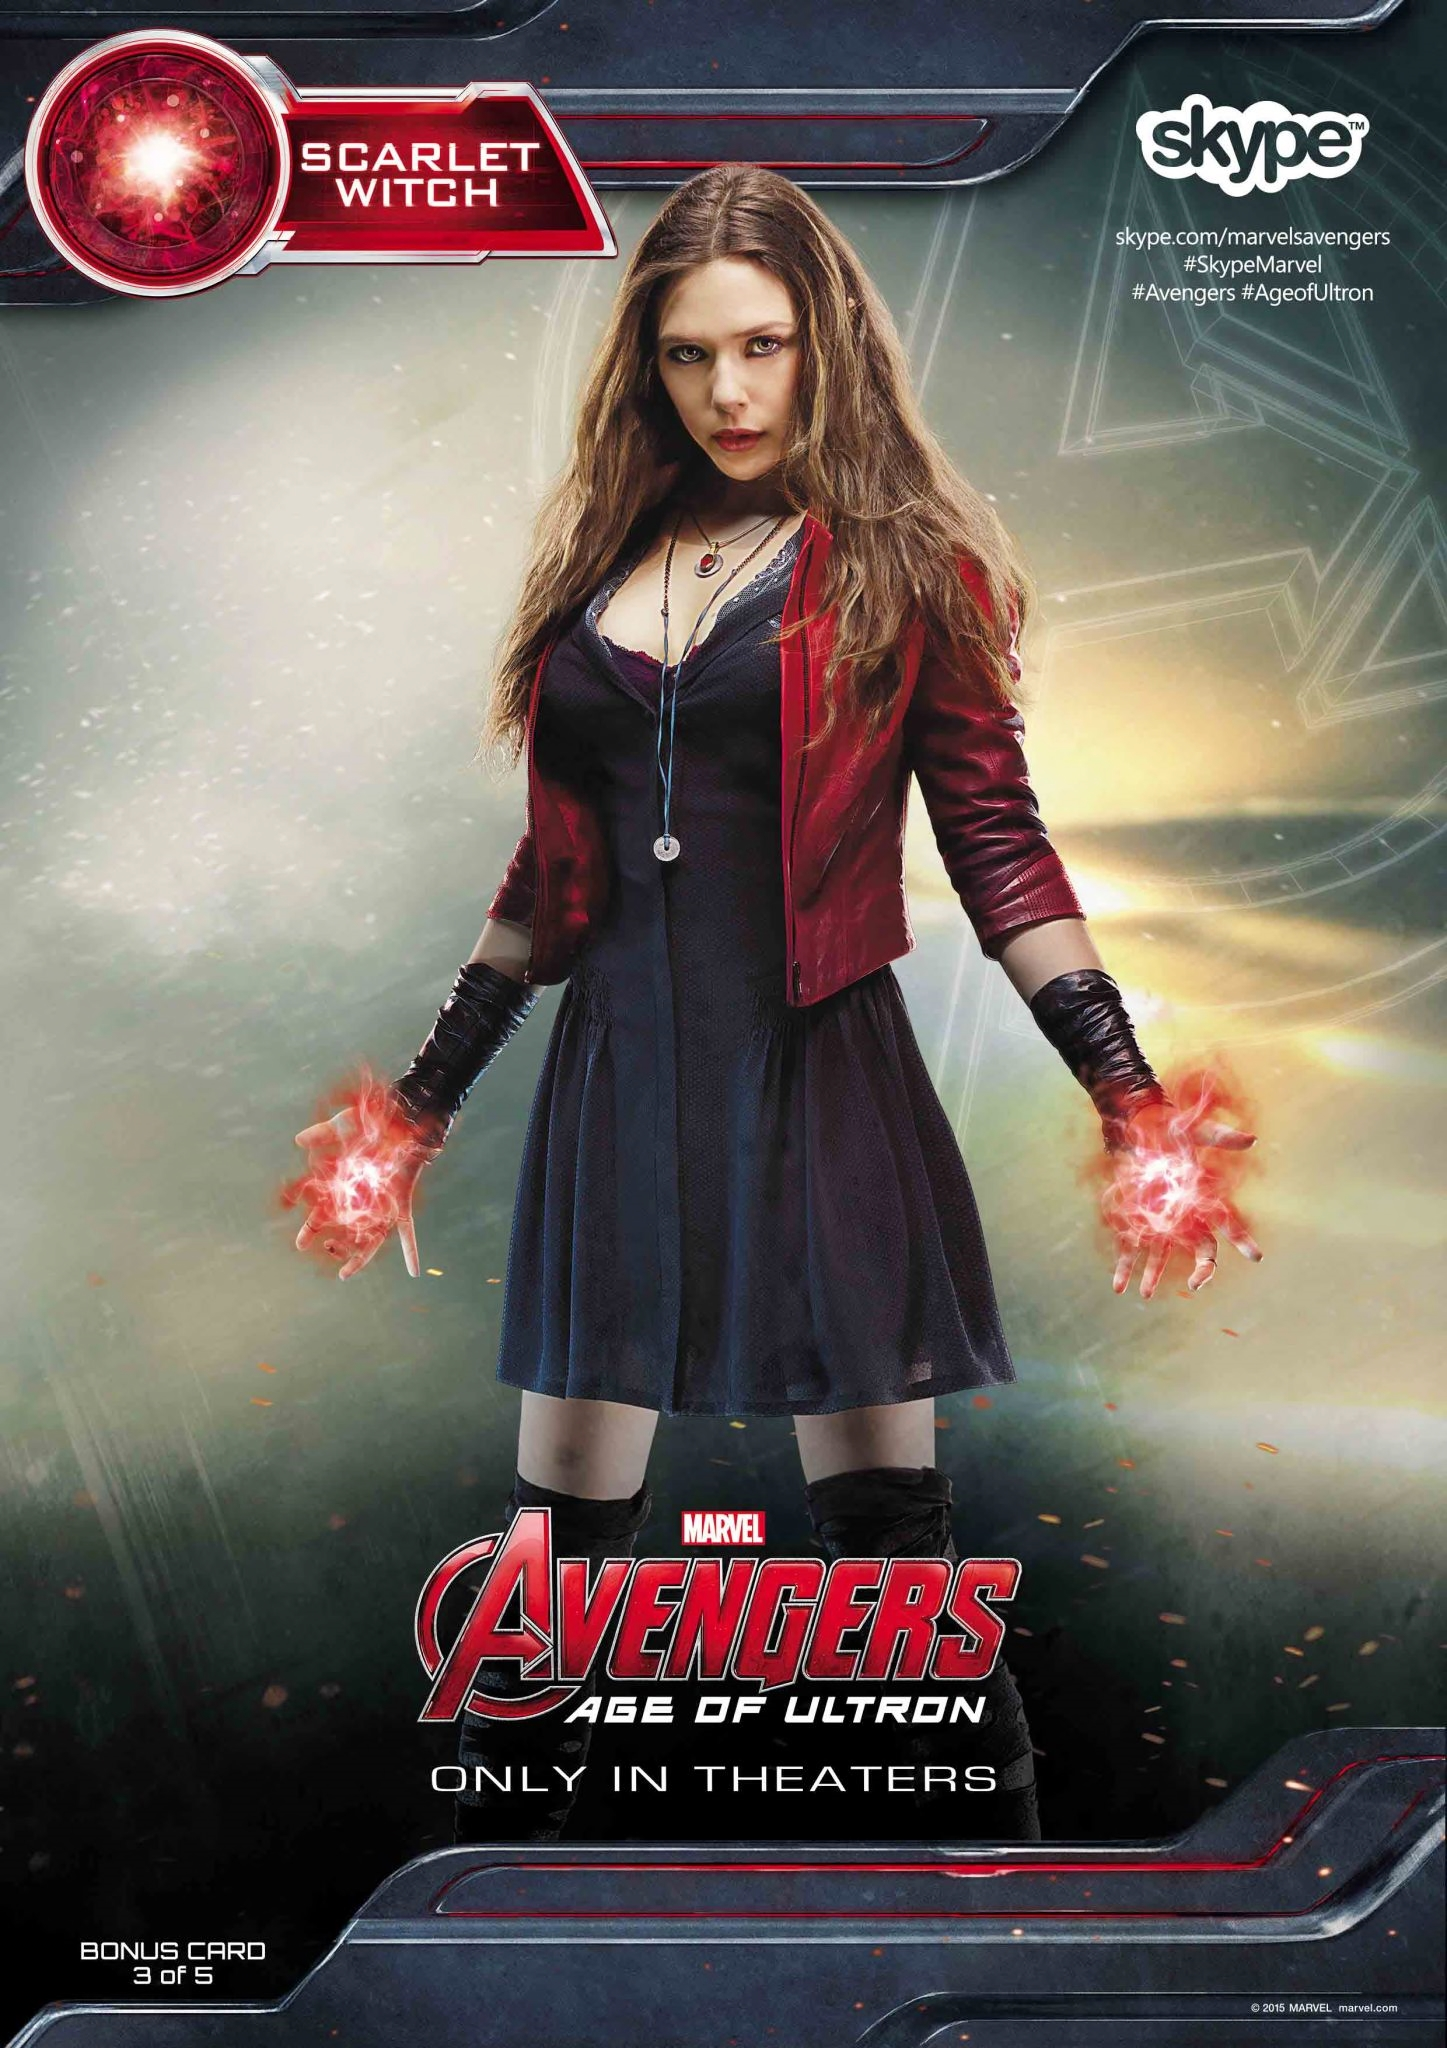 Wanda Pietro Images Scarlet Witch HD Wallpaper And Background Photos